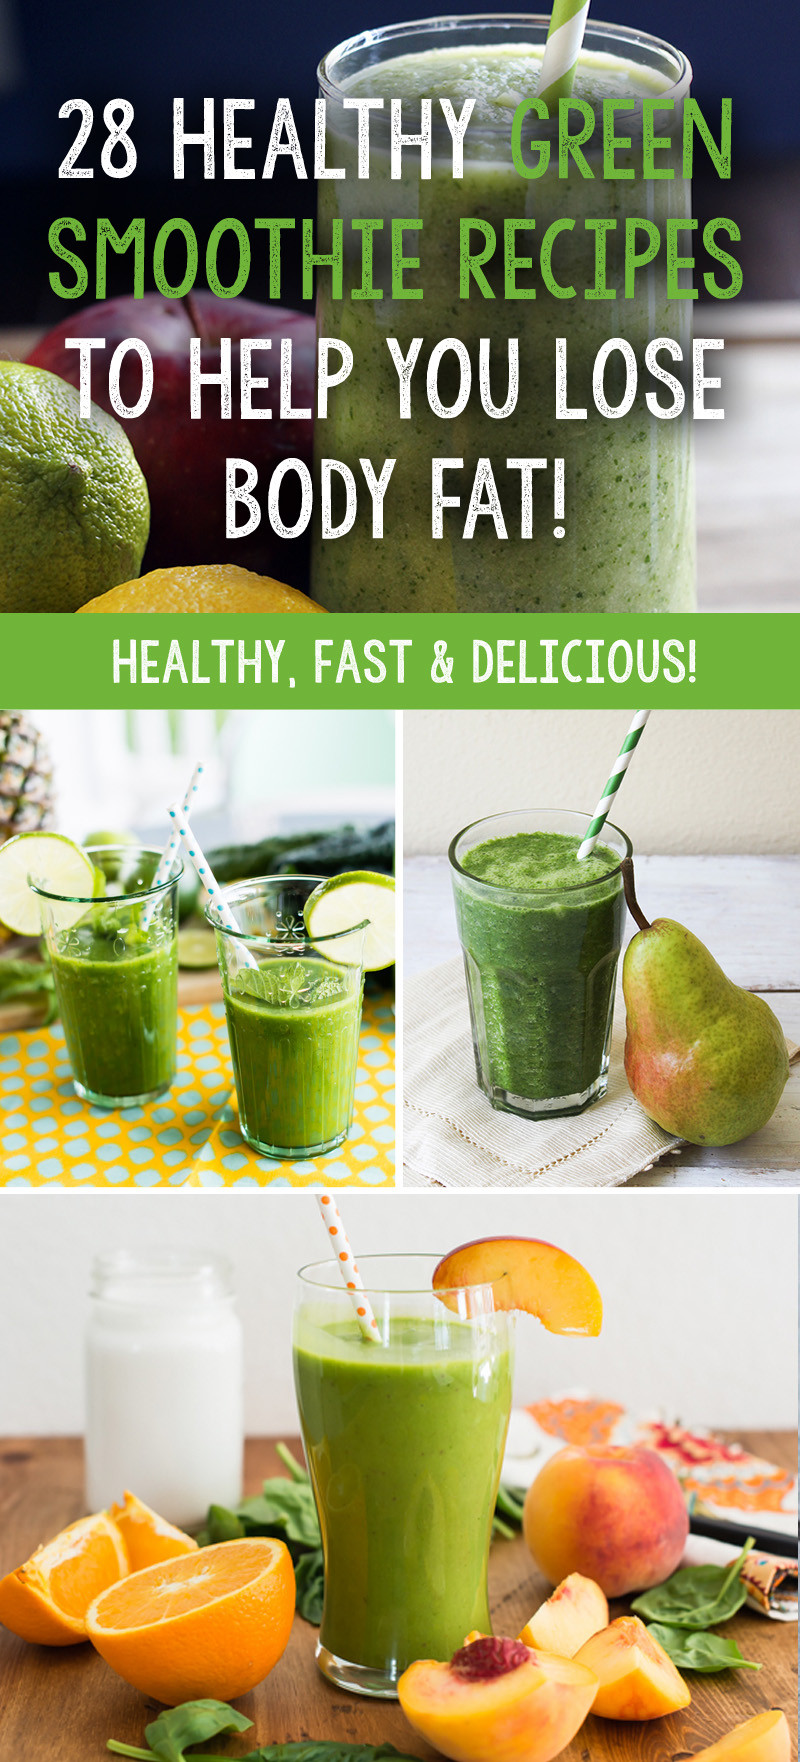 Green Healthy Smoothies  28 Healthy Green Smoothie Recipes To Help You Lose Body Fat